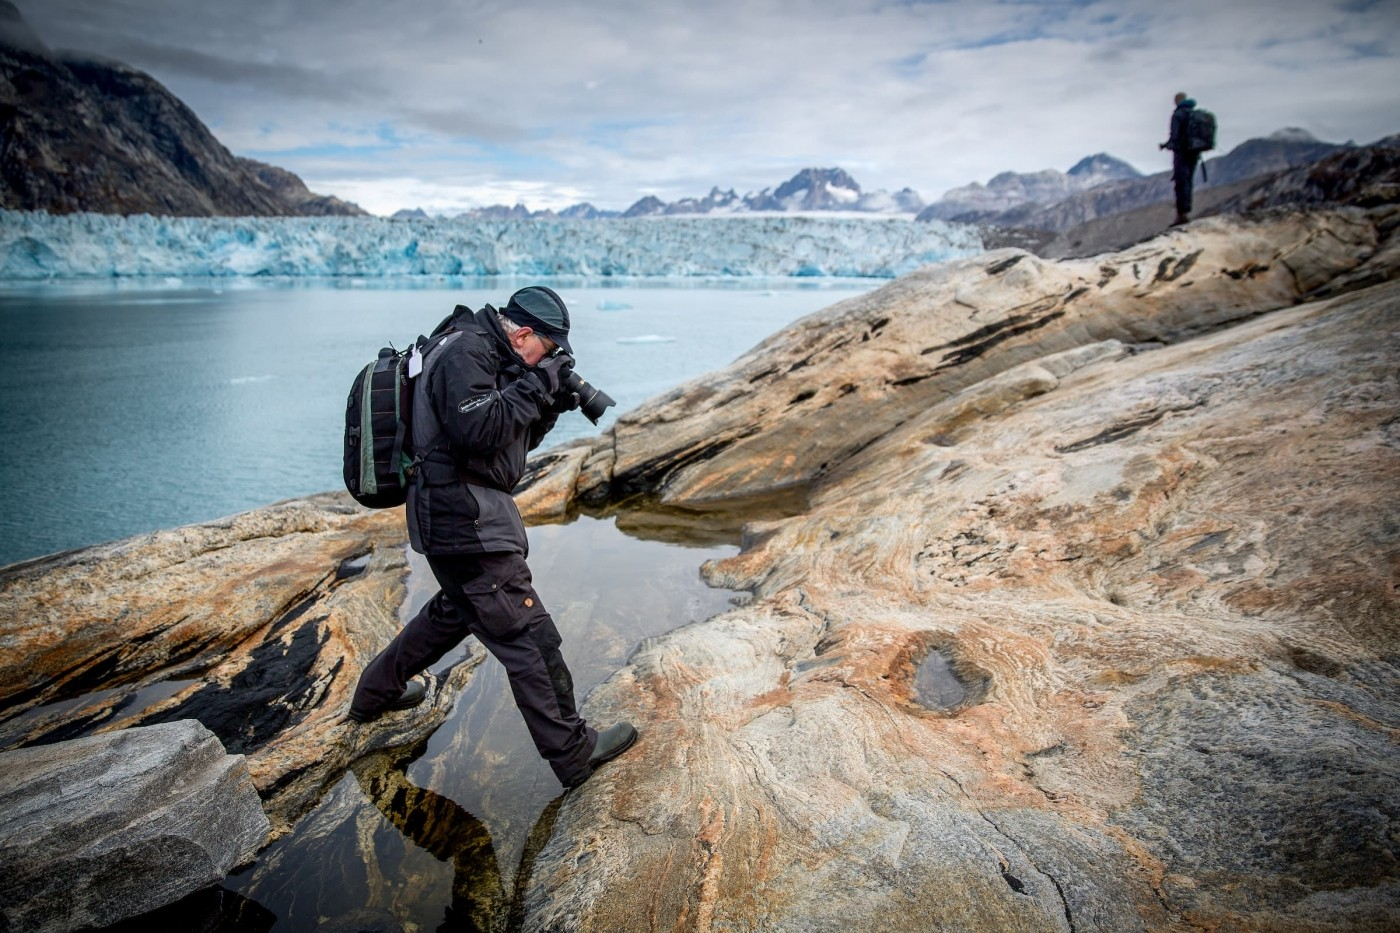 A photographer focusing on rock lines and details near the Knud Rasmussen glacier in East Greenland. By Mads Pihl